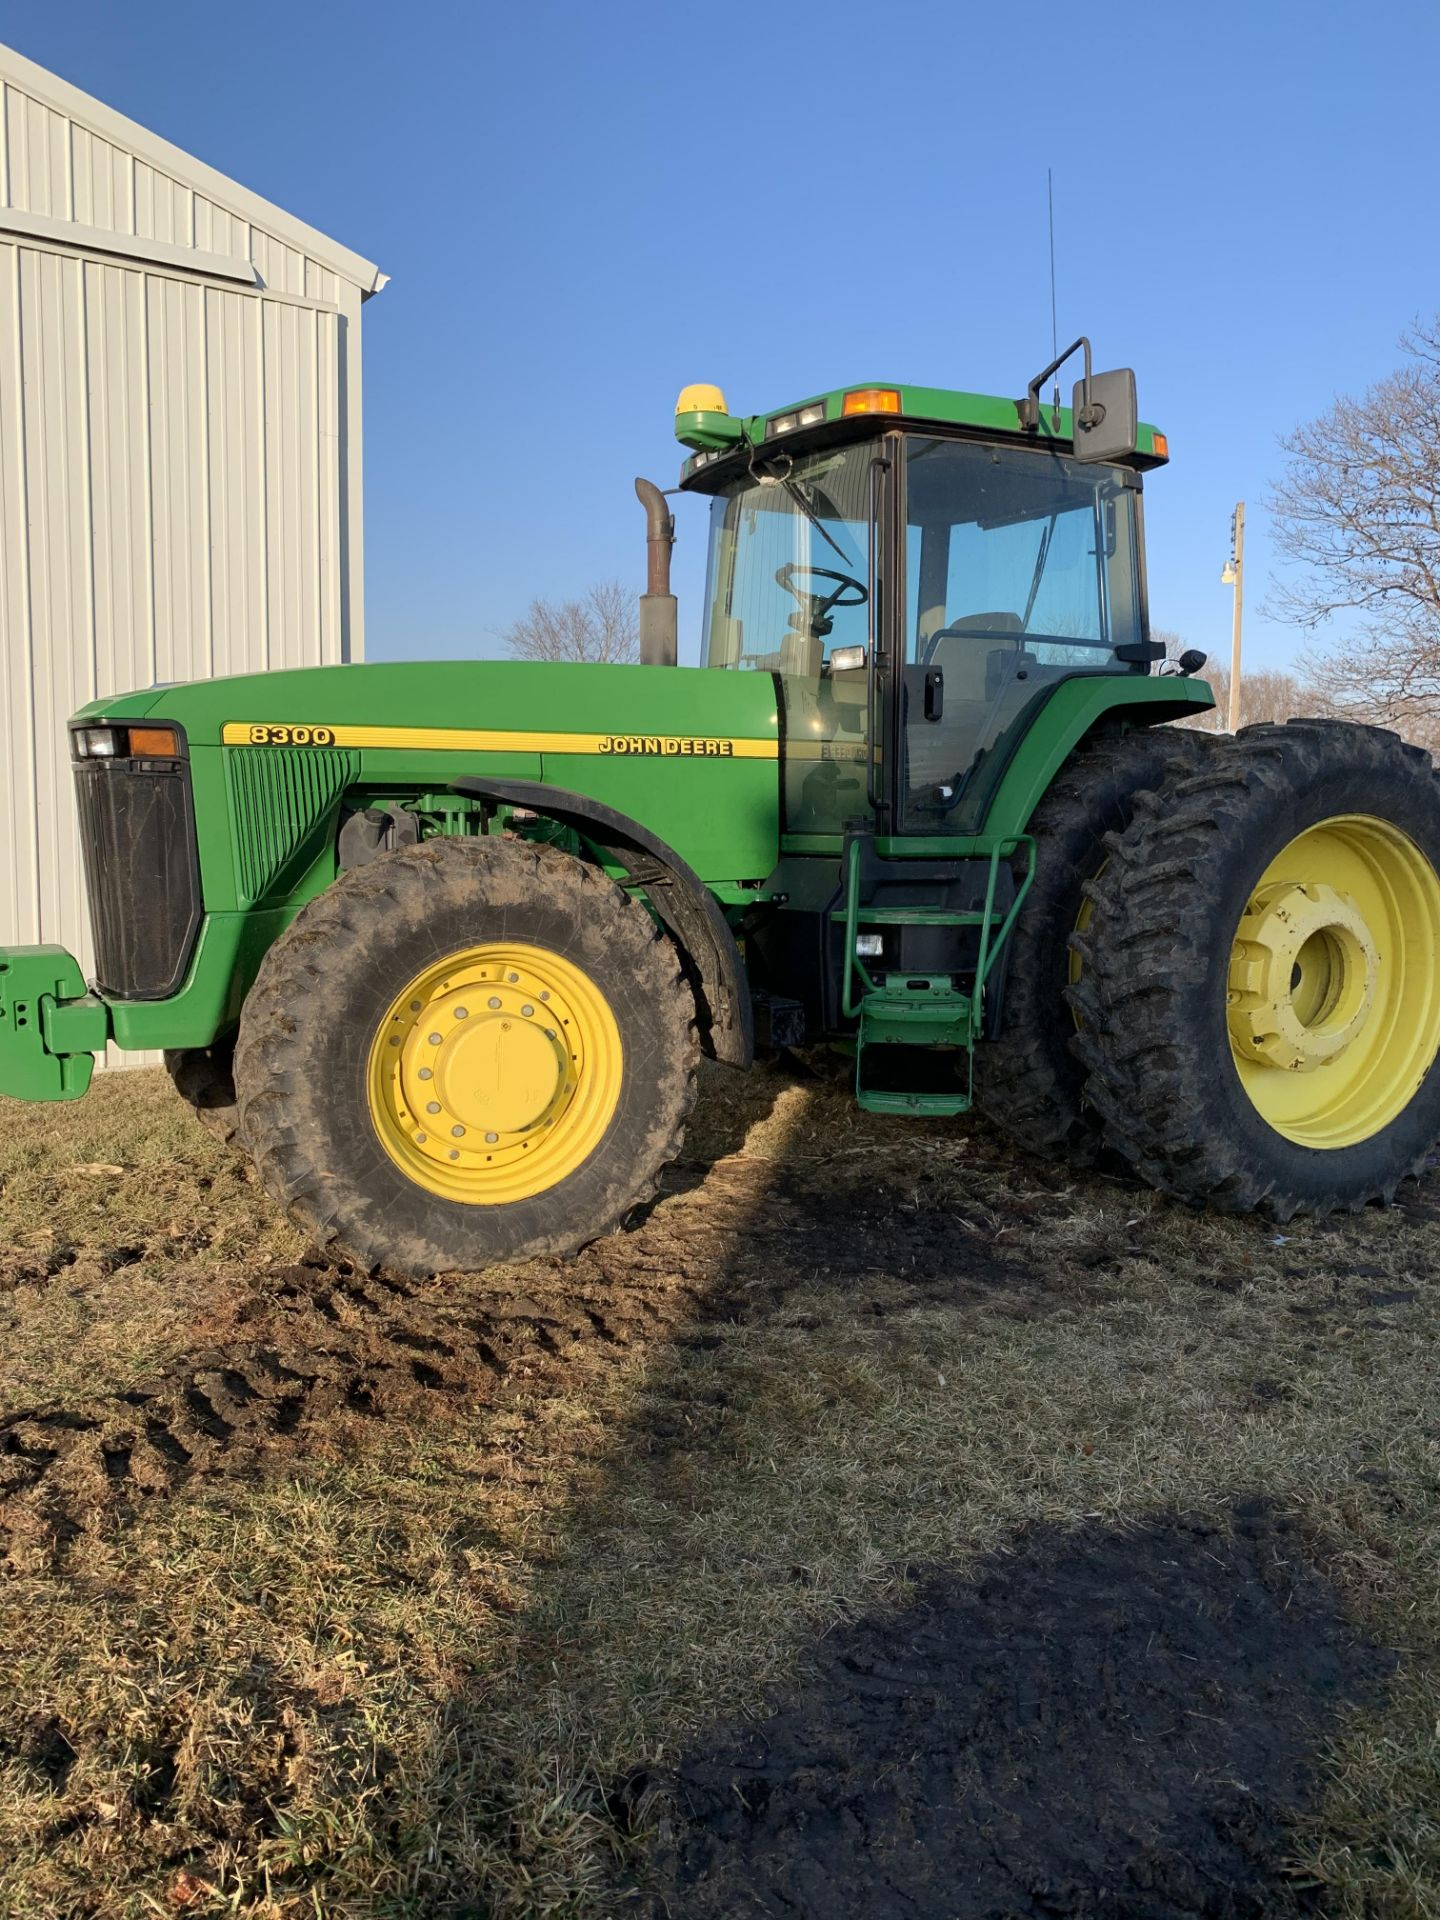 1997 John Deere 8300 MFWD, Power Shift, 3 Hydraulic Remotes, 3 Pt., Quick Hitch, PTO, Green Star - Image 24 of 25